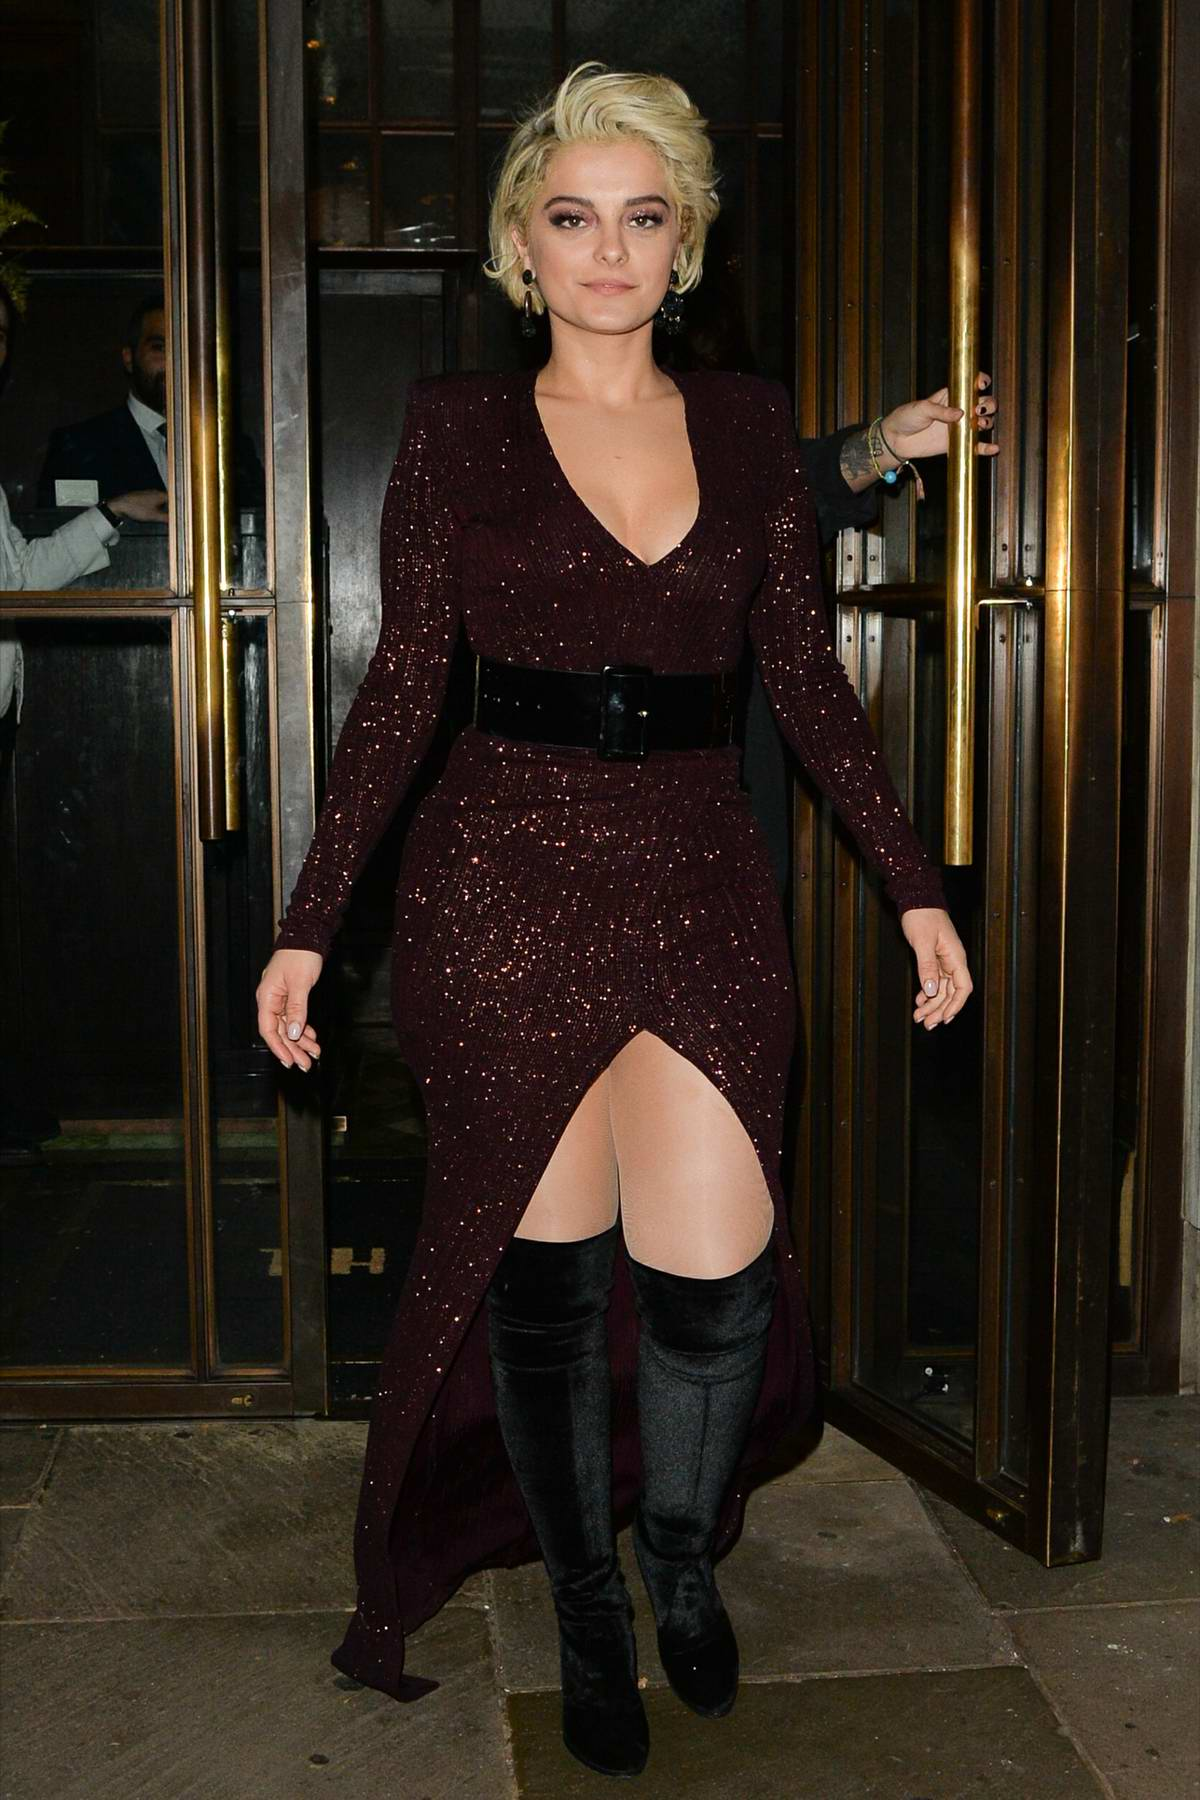 Bebe Rexha looks gorgeous in a burgundy dress as she leaves the Ivy Kensington in London, UK